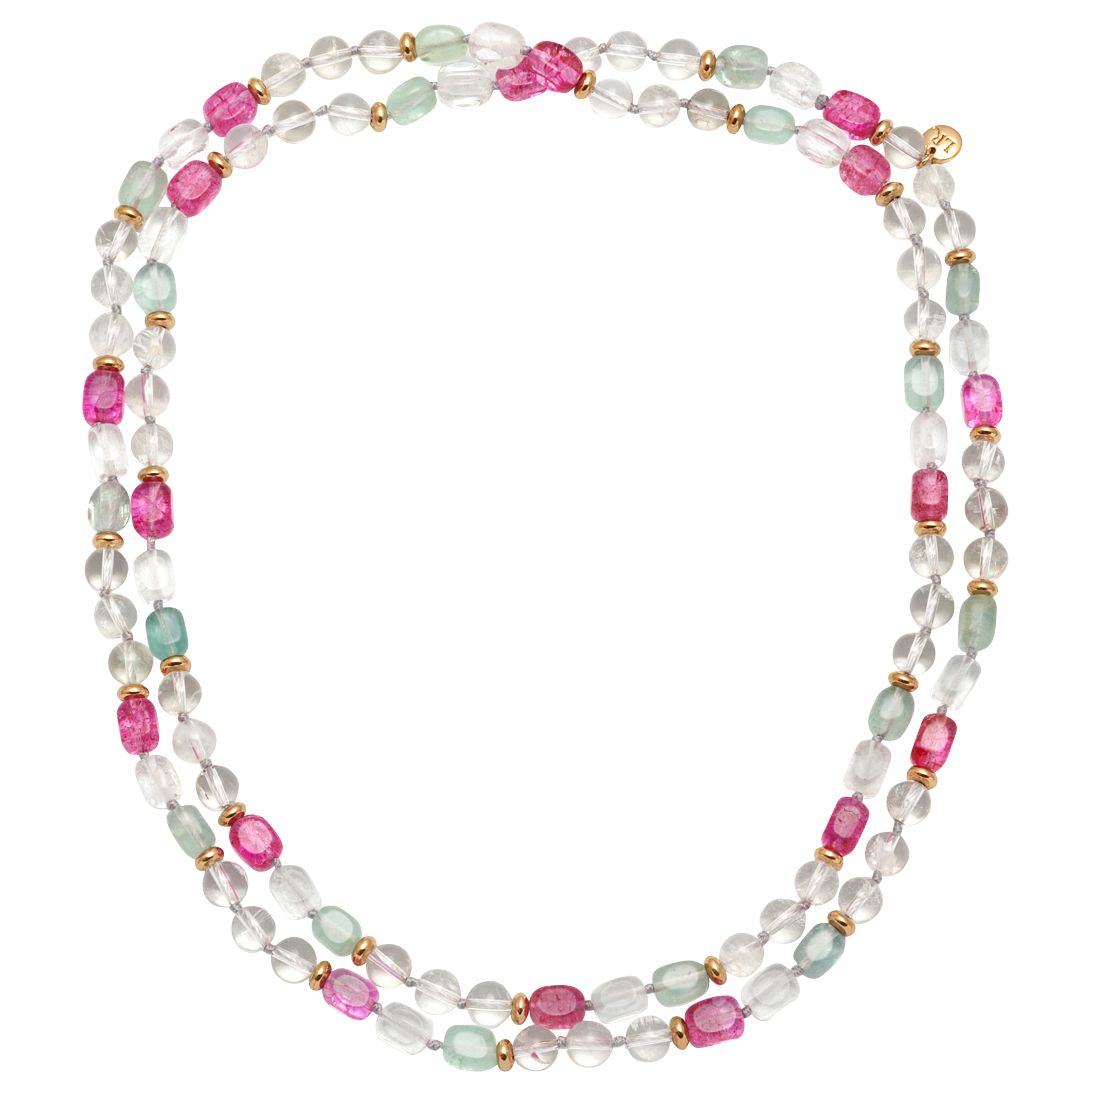 Lola Rose Lola Rose Adah Necklace